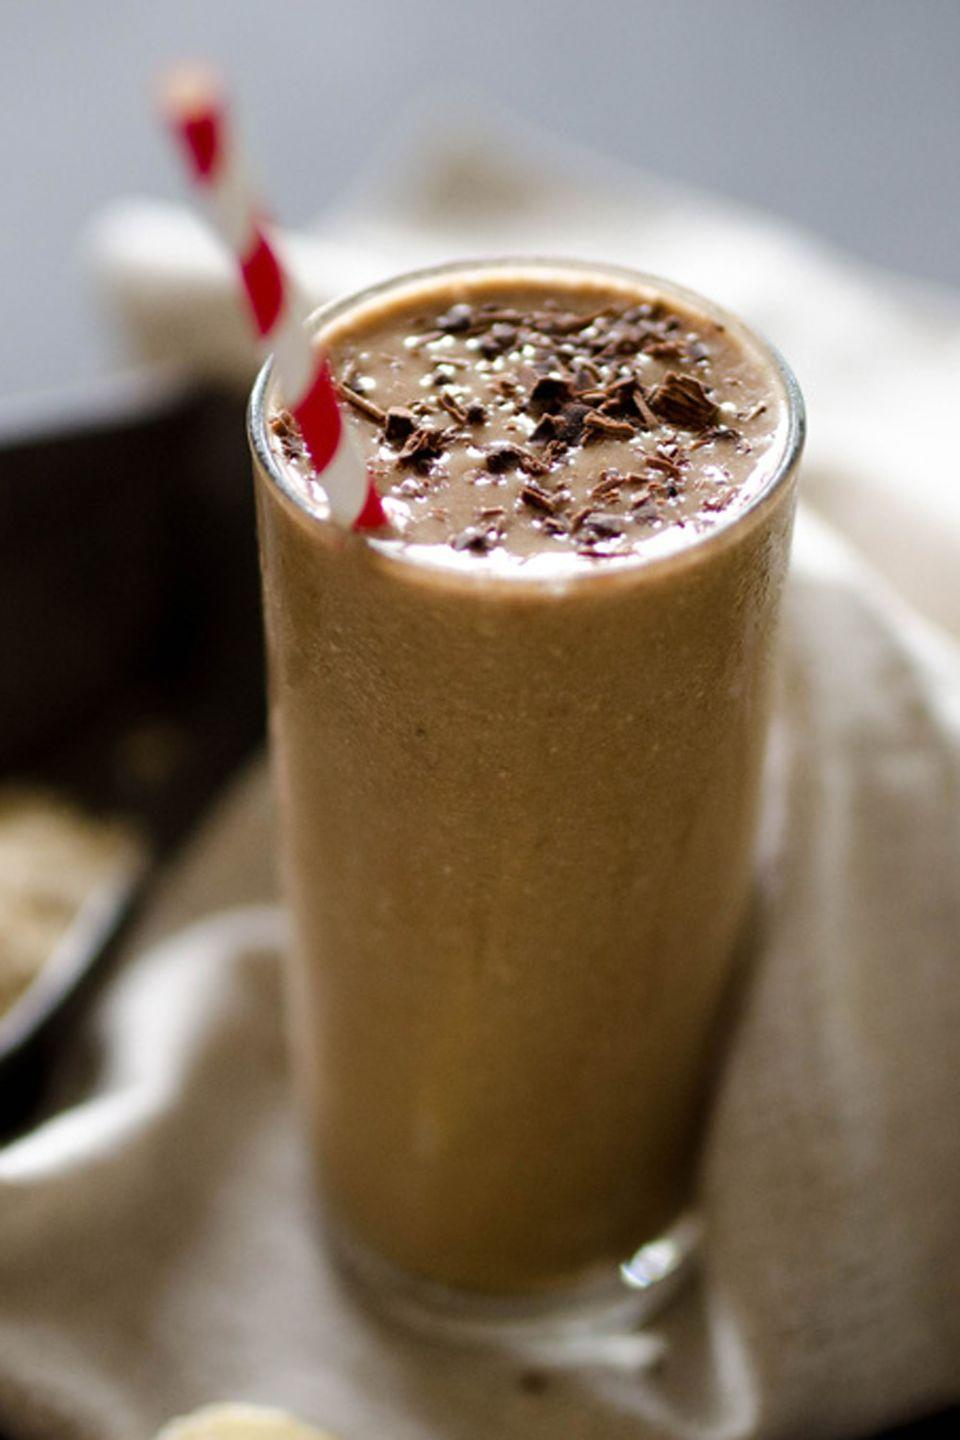 """<p>Coffee lovers, rejoice! Smoothies should not (and will not) replace your cup of joe. </p><p><em><a href=""""https://www.liveeatlearn.com/wake-me-up-coffee-smoothie/"""" rel=""""nofollow noopener"""" target=""""_blank"""" data-ylk=""""slk:Get the recipe from Live Eat Learn »"""" class=""""link rapid-noclick-resp"""">Get the recipe from Live Eat Learn »</a></em></p>"""